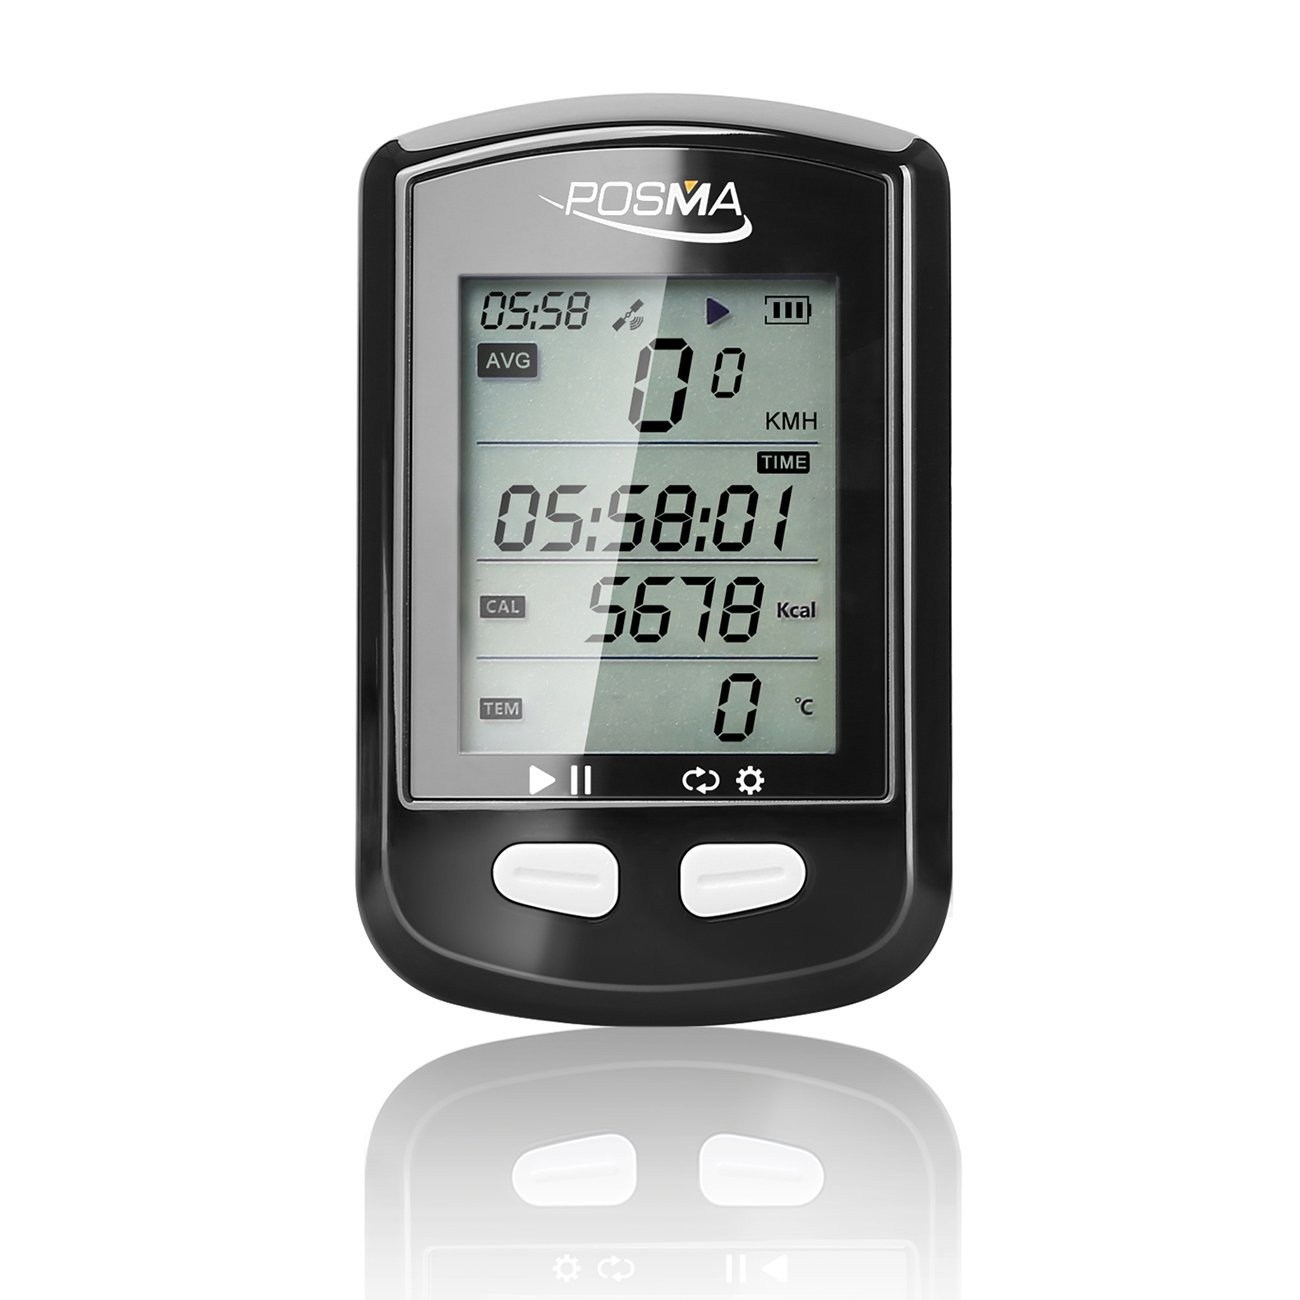 POSMA DB2 Bluetooth GPS Cycling Bike Computer Speedometer Odometer Altimeter Calories Heart Rate cadence Temperature Route tracking ANT+, Support STRAVA, BLE4.0 Smartphone, iPhone Android APP